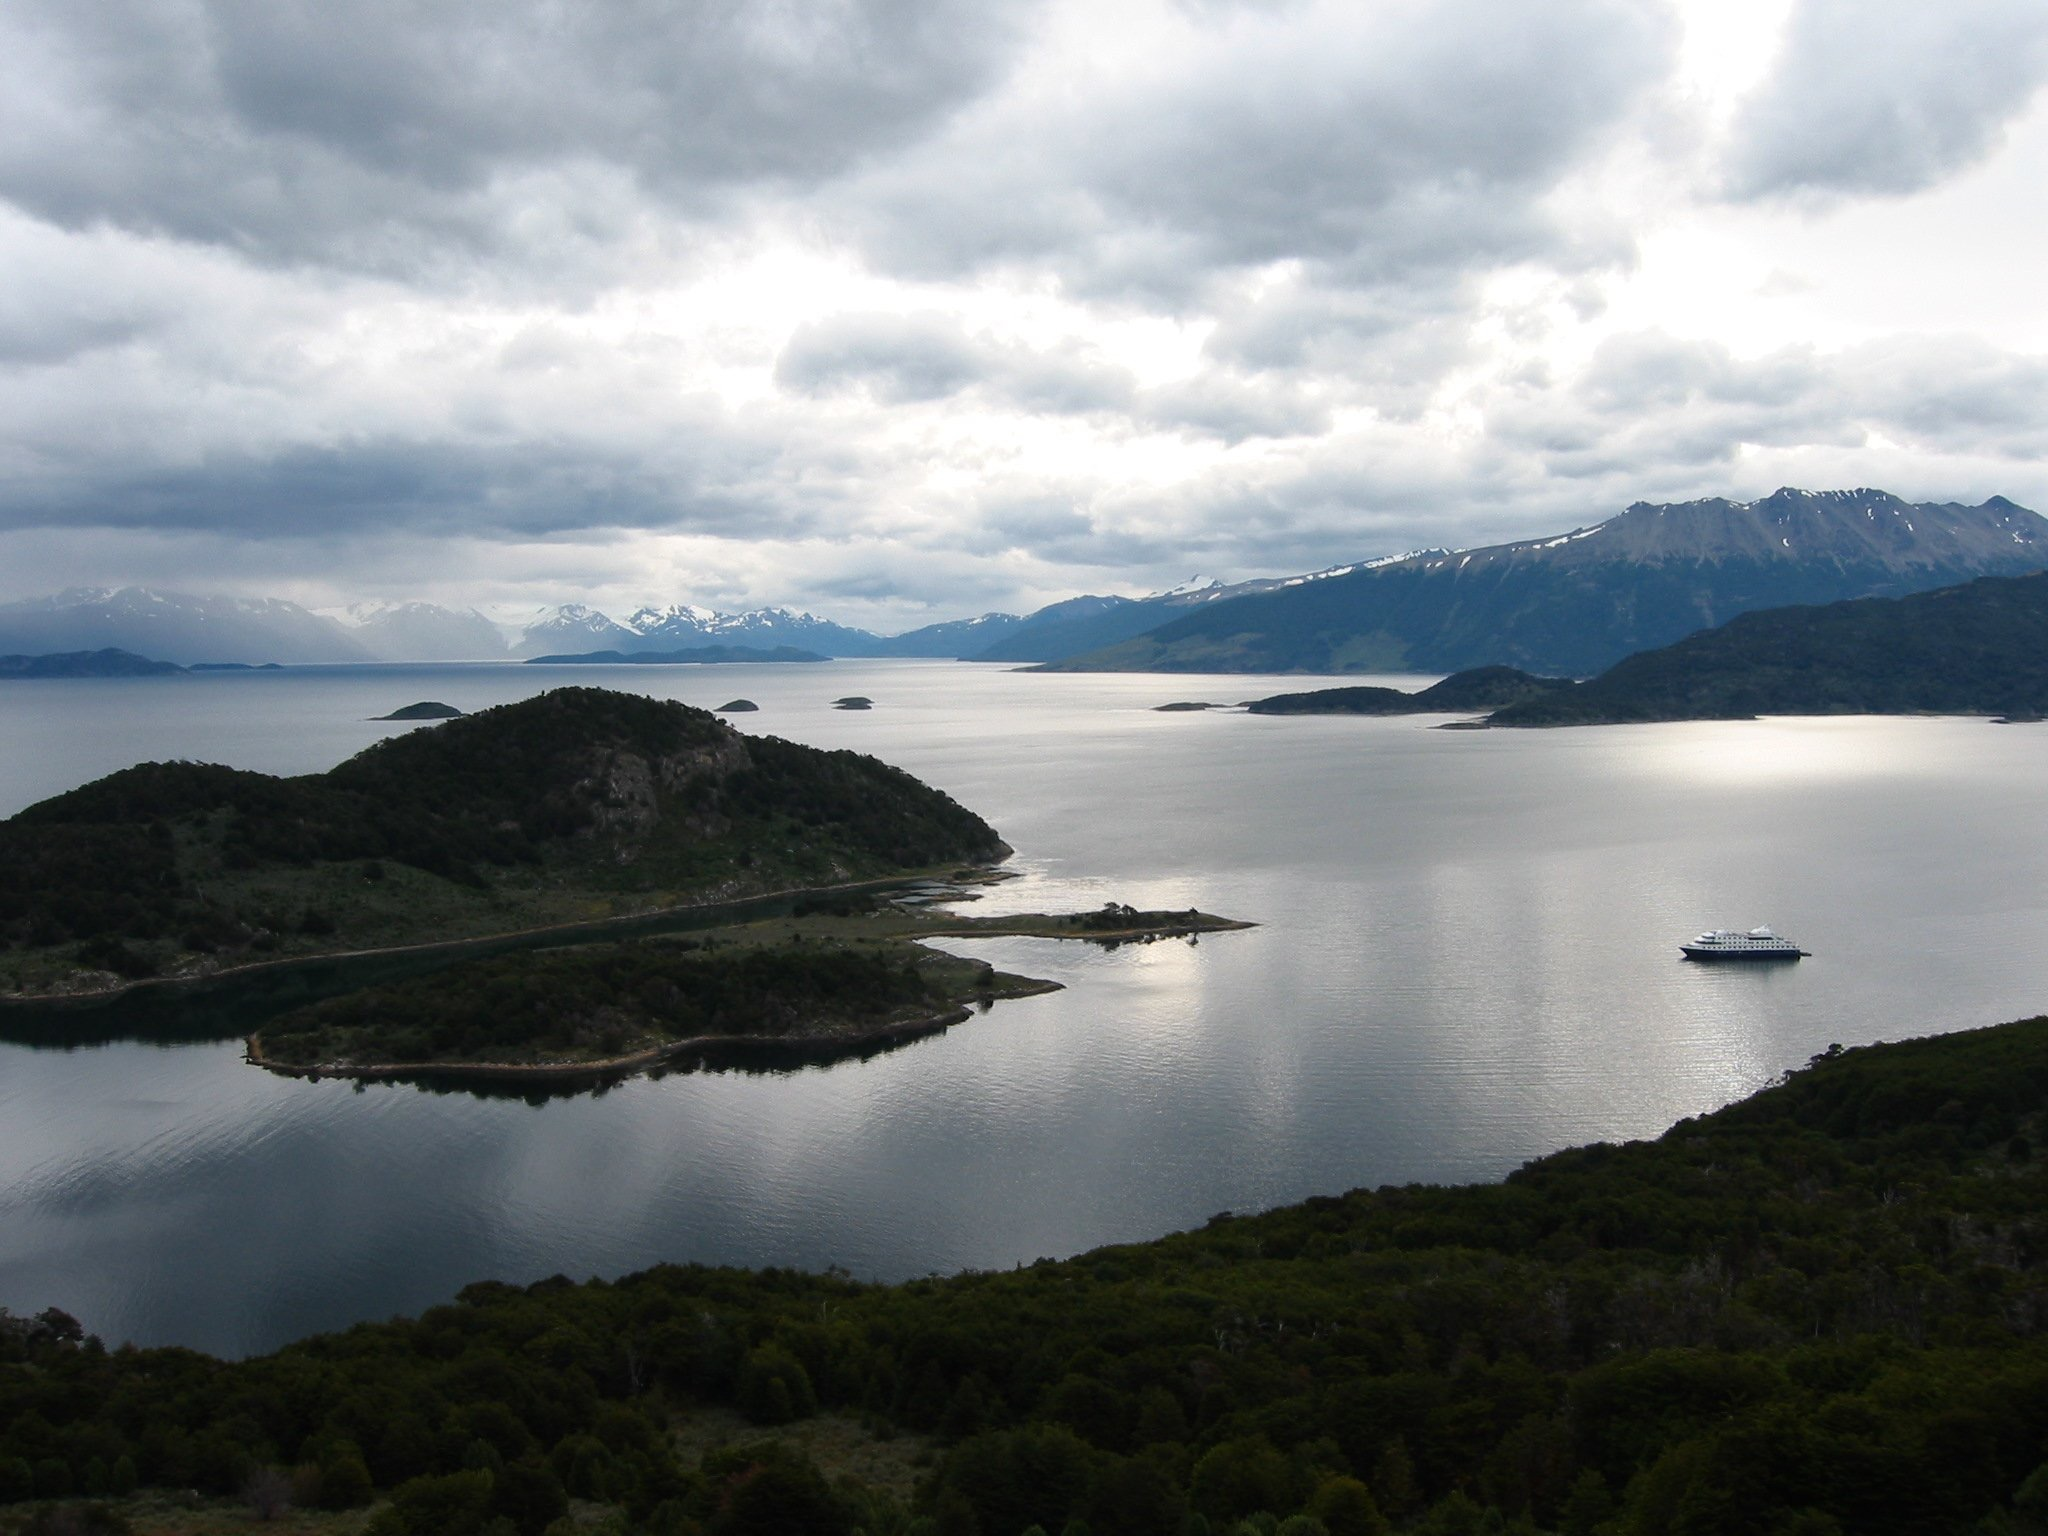 An Australis ship floats among Patagonia's fjords.